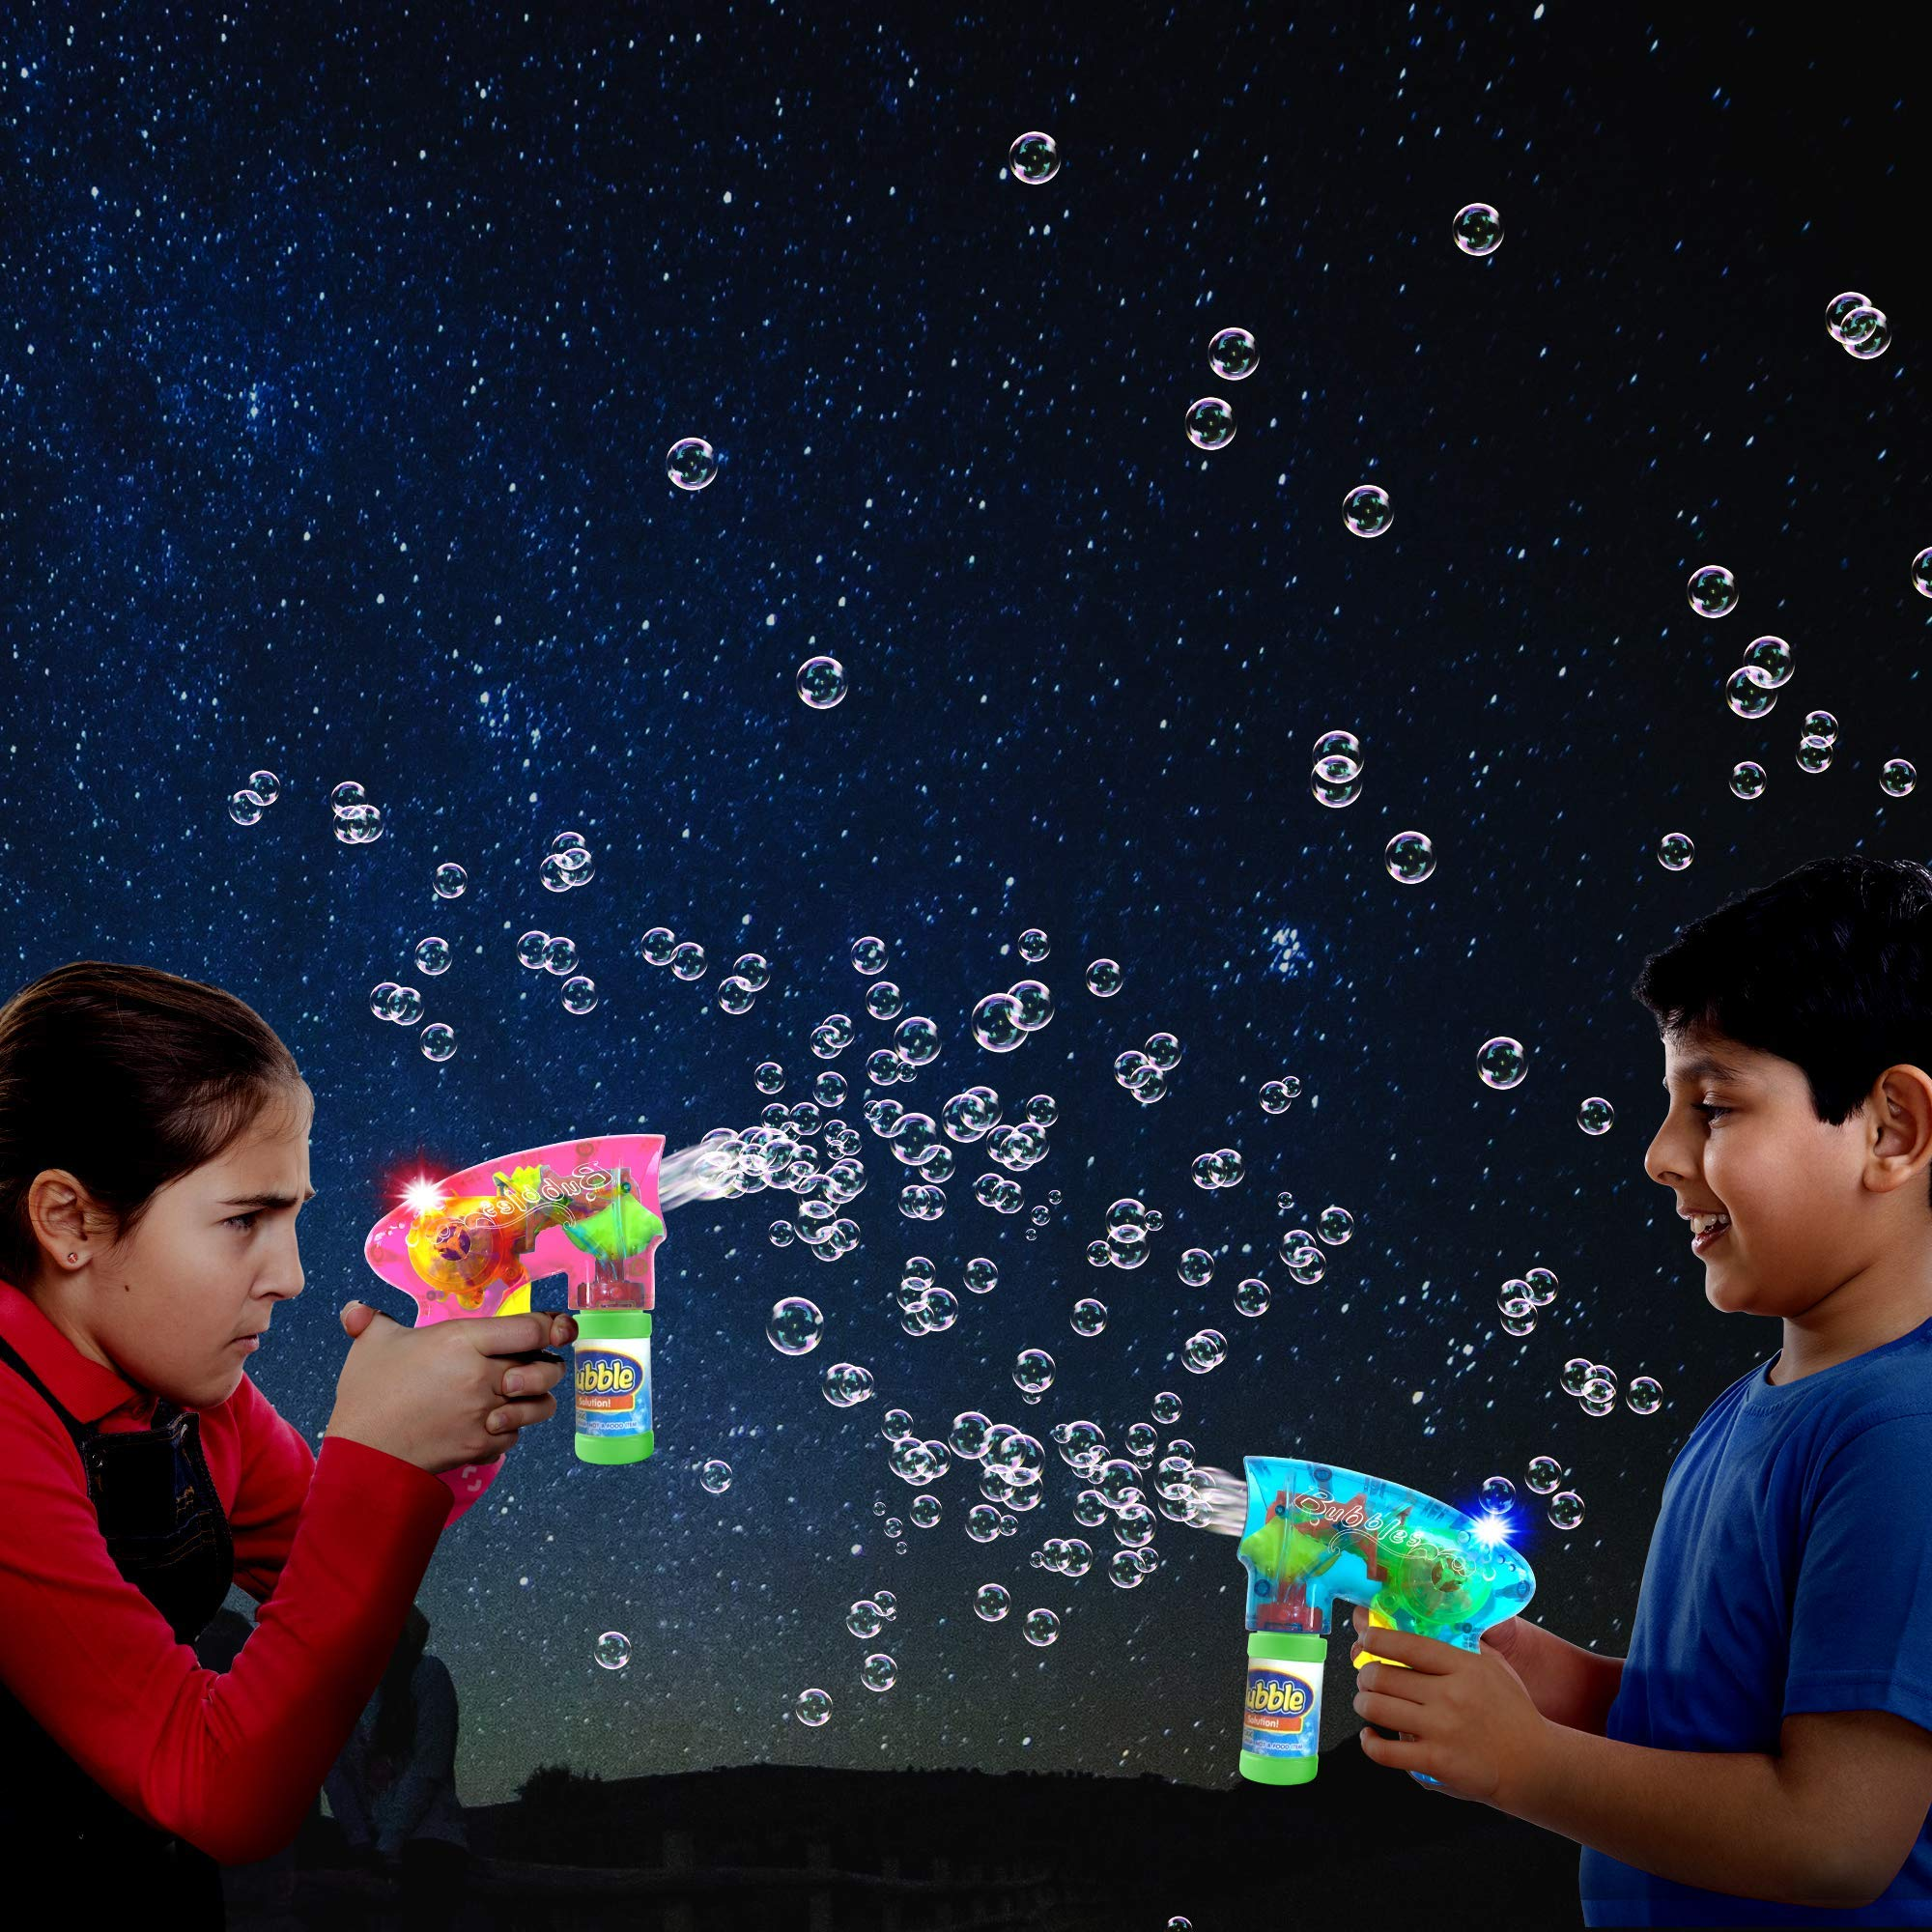 ArtCreativity Friction Powered Light Up Bubble Blaster Set (Set of 3) | Includes 3 LED Bubbles Guns & 6 Bottles of Bubble Fluid | Outdoor, Indoor Fun | Gift Idea, Party Activity | No Batteries Needed by ArtCreativity (Image #6)